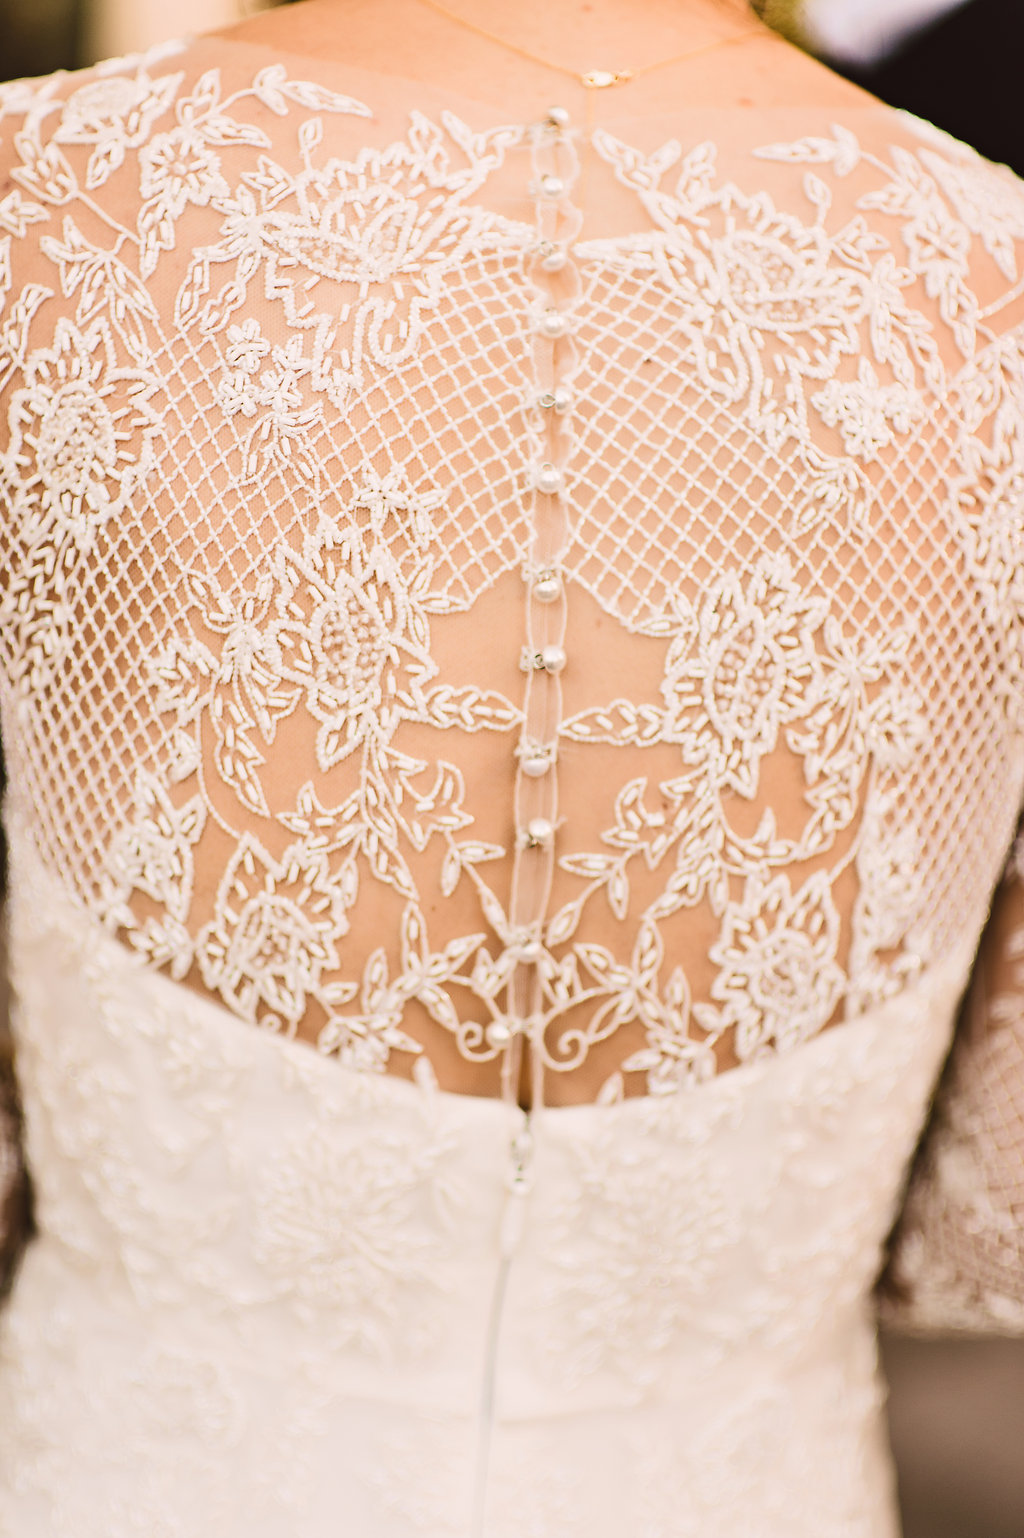 monique lhuillier wedding dress with detailed beading lace back close up